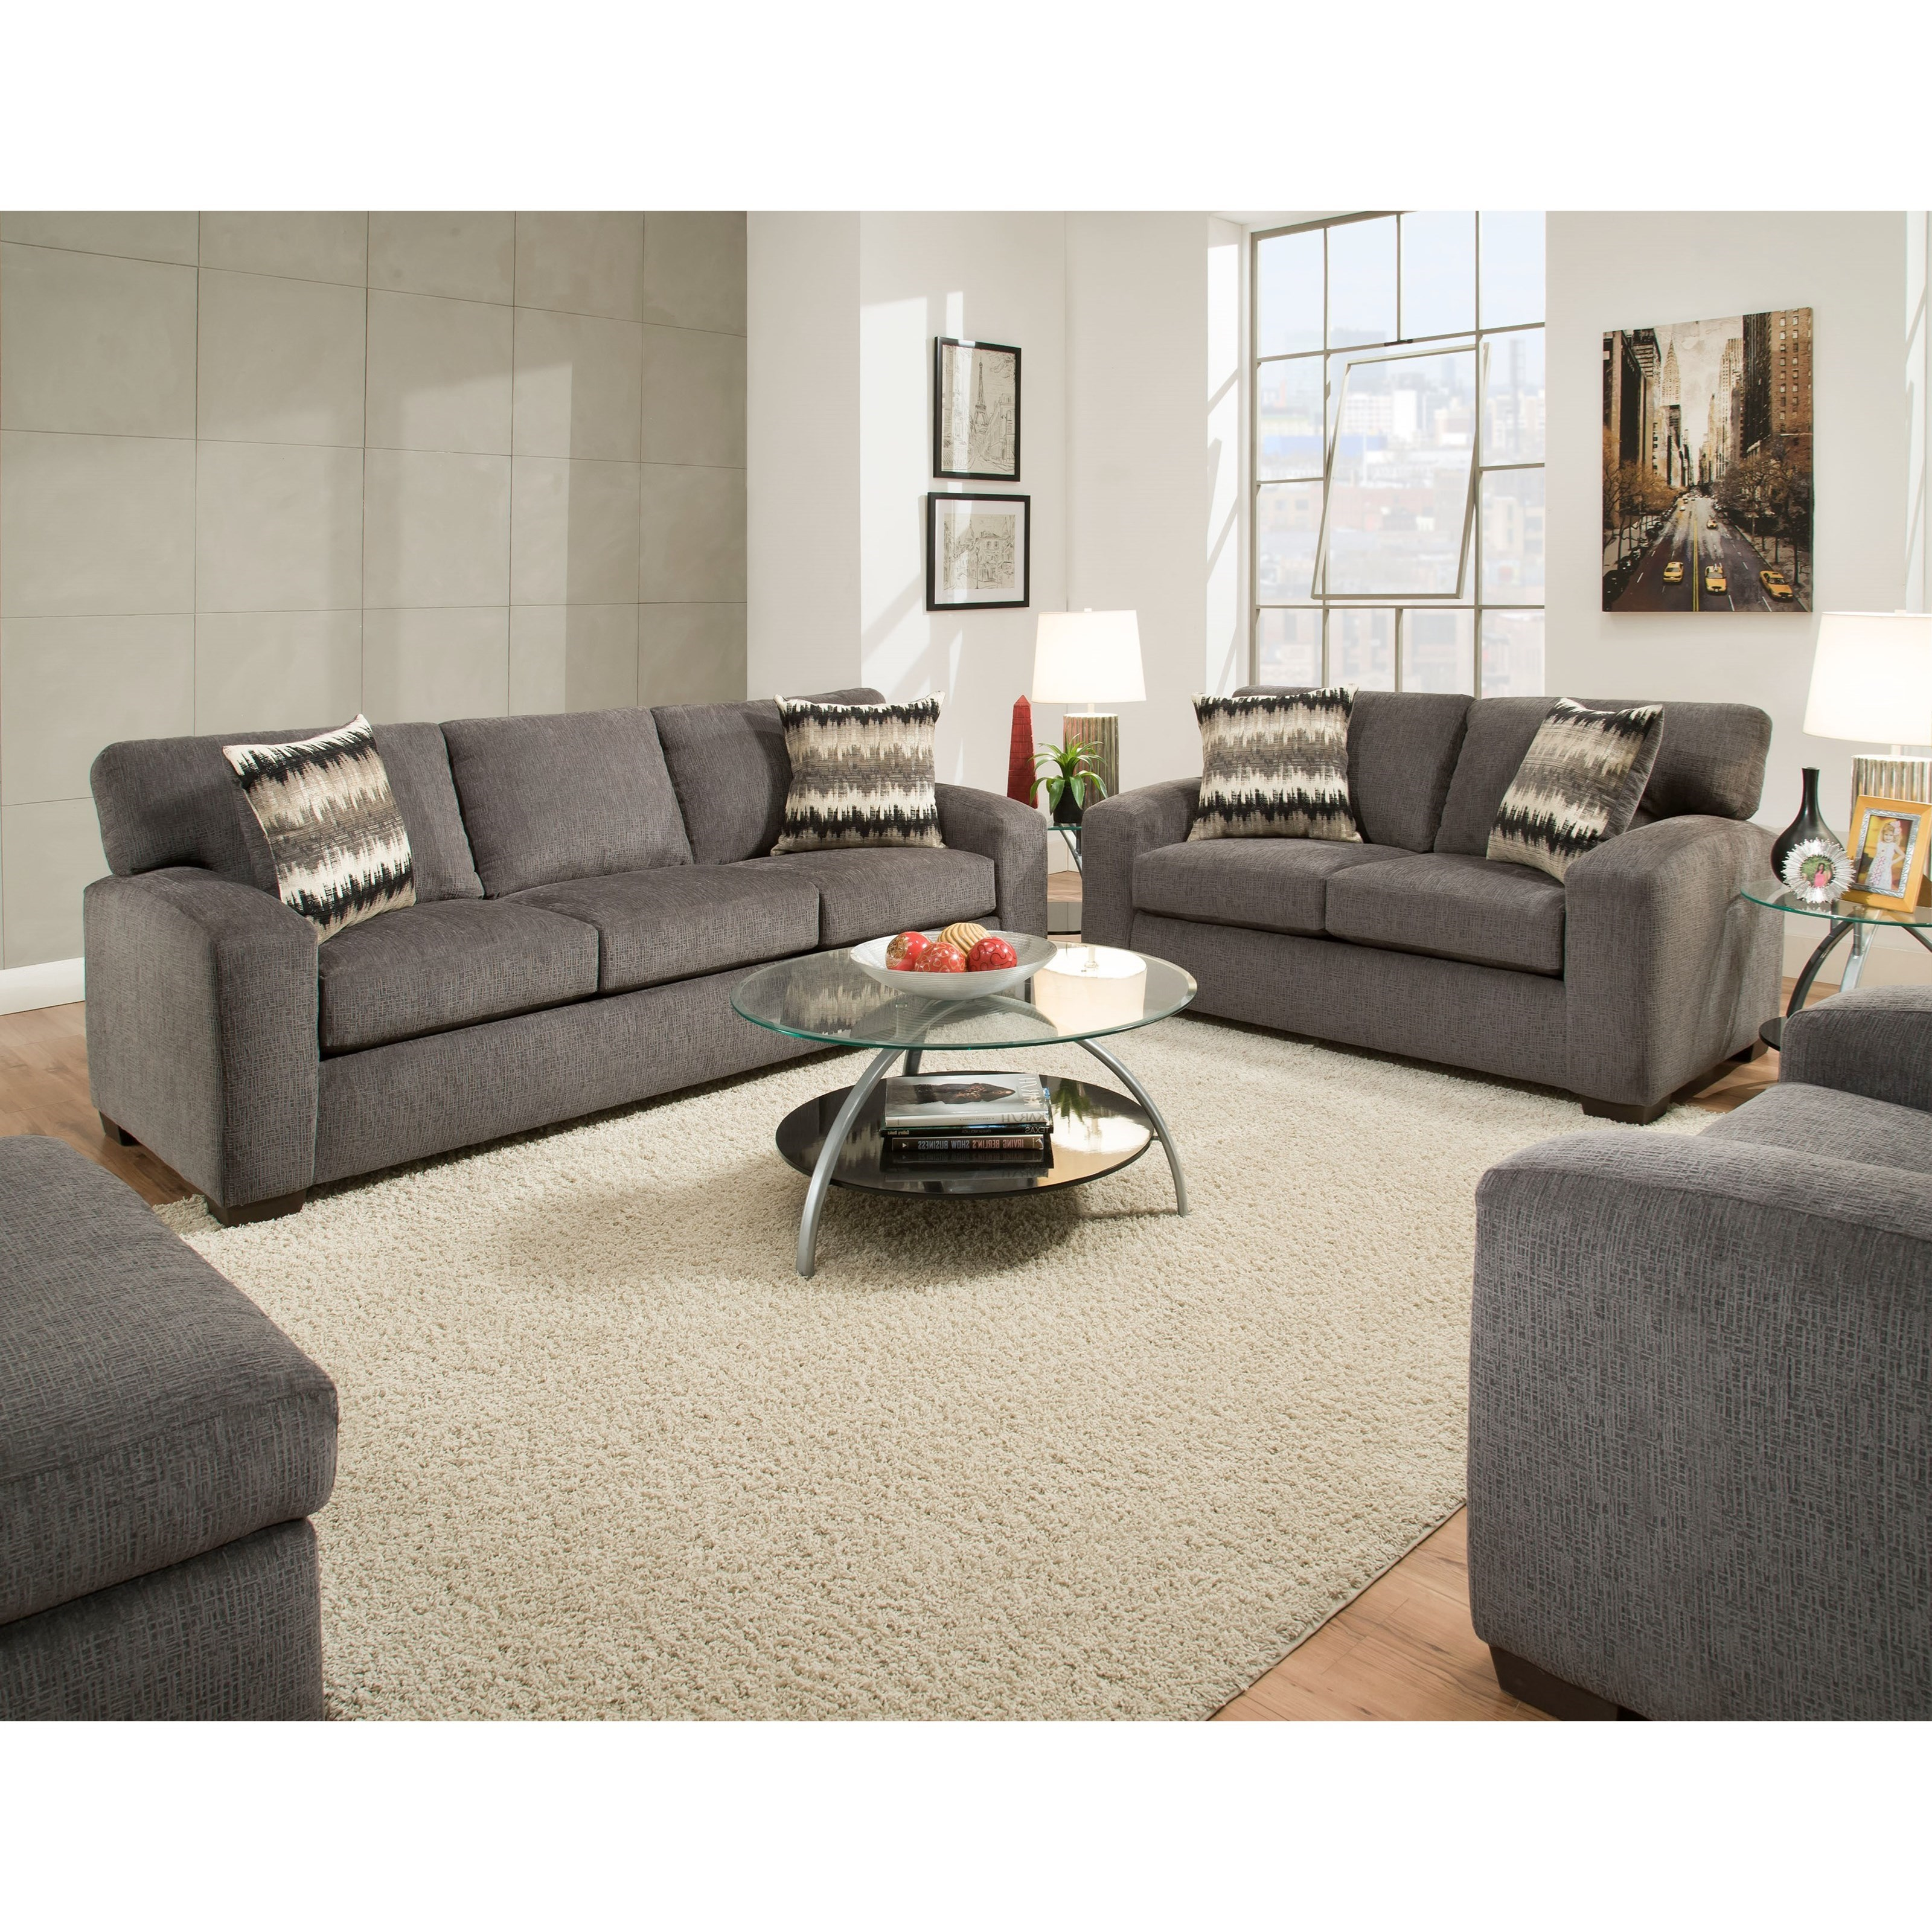 5250 Living Room Group by Peak Living at Prime Brothers Furniture